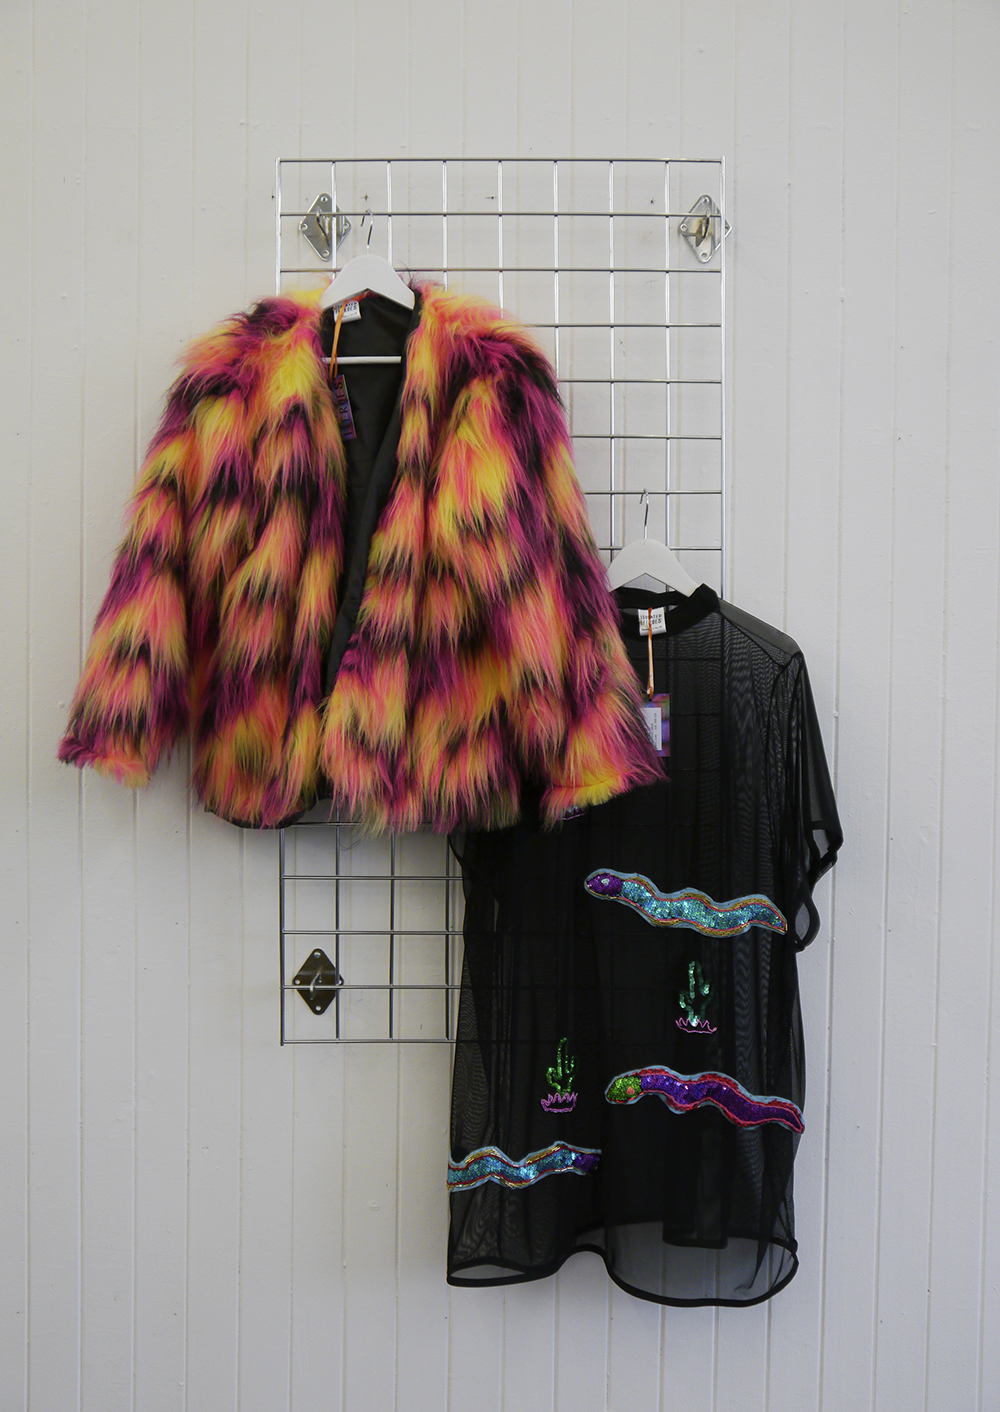 Isolated Heroes, Scottish design, Scottish designer, pop up shop, pop up, Glasgow, South Block, Scottish blogger, Dundee designer, Nevada collection, luxury street wear, sequin dress, The Academy of Makeup, Scottish models, new collection, sequins, fauc fur jacket, sequin tshirt dress